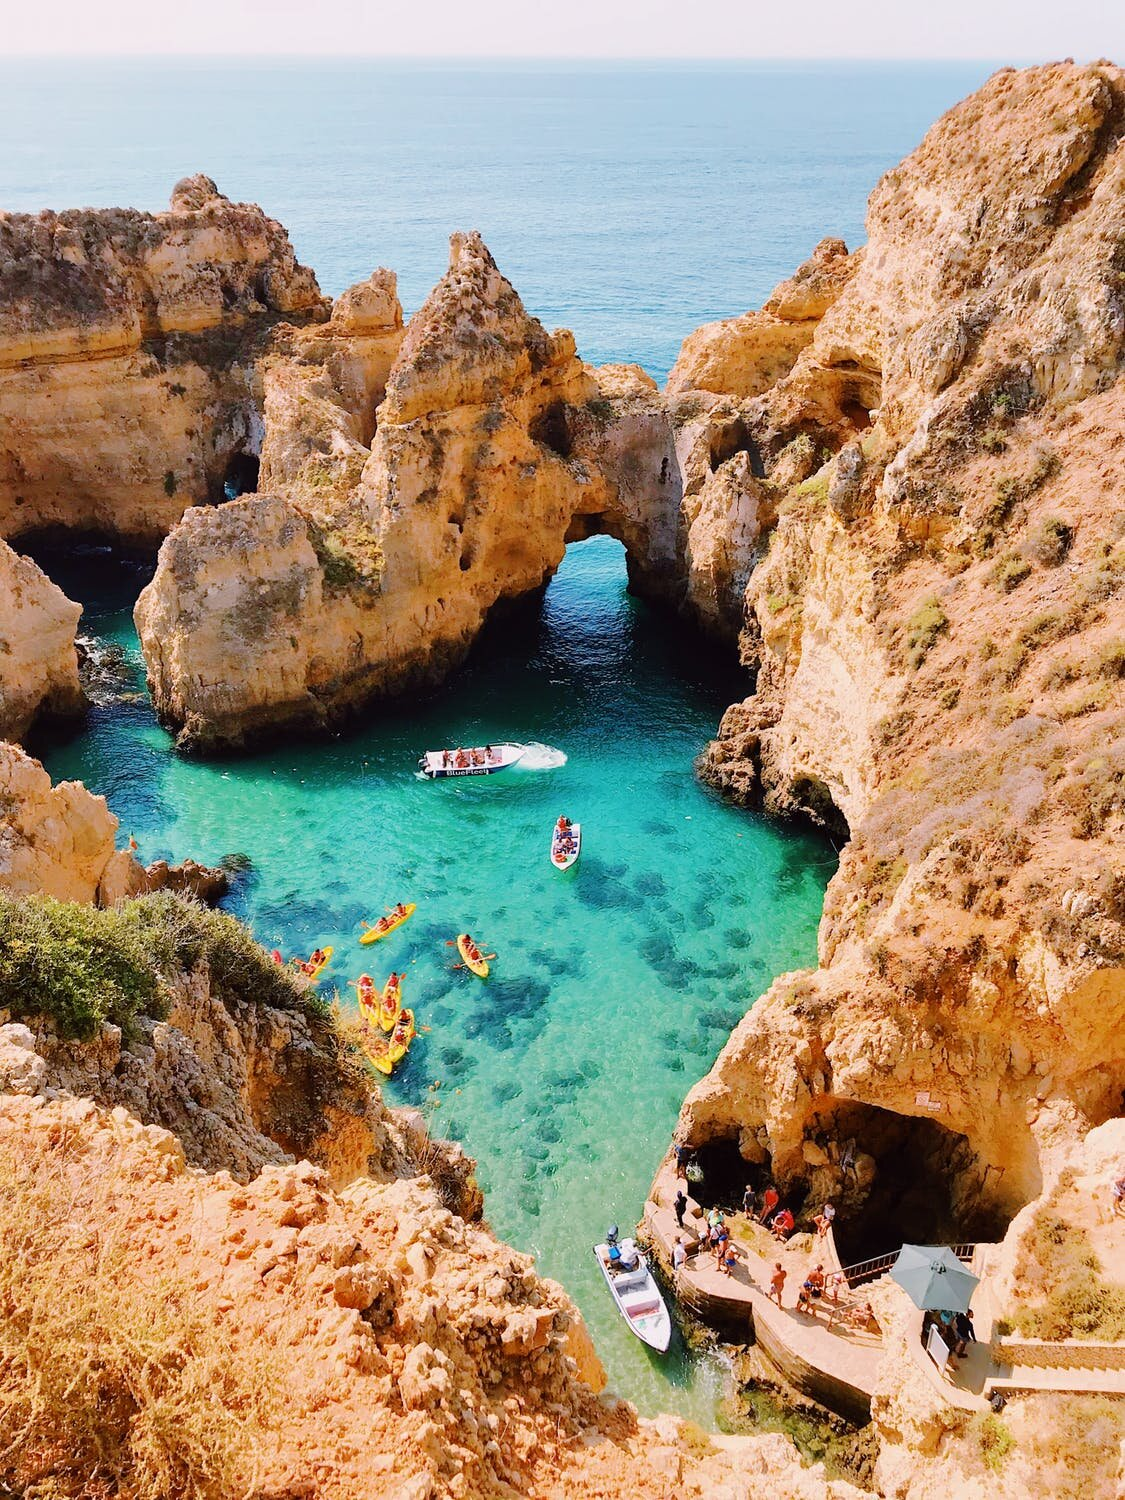 Portugal offers a wide range of landscapes